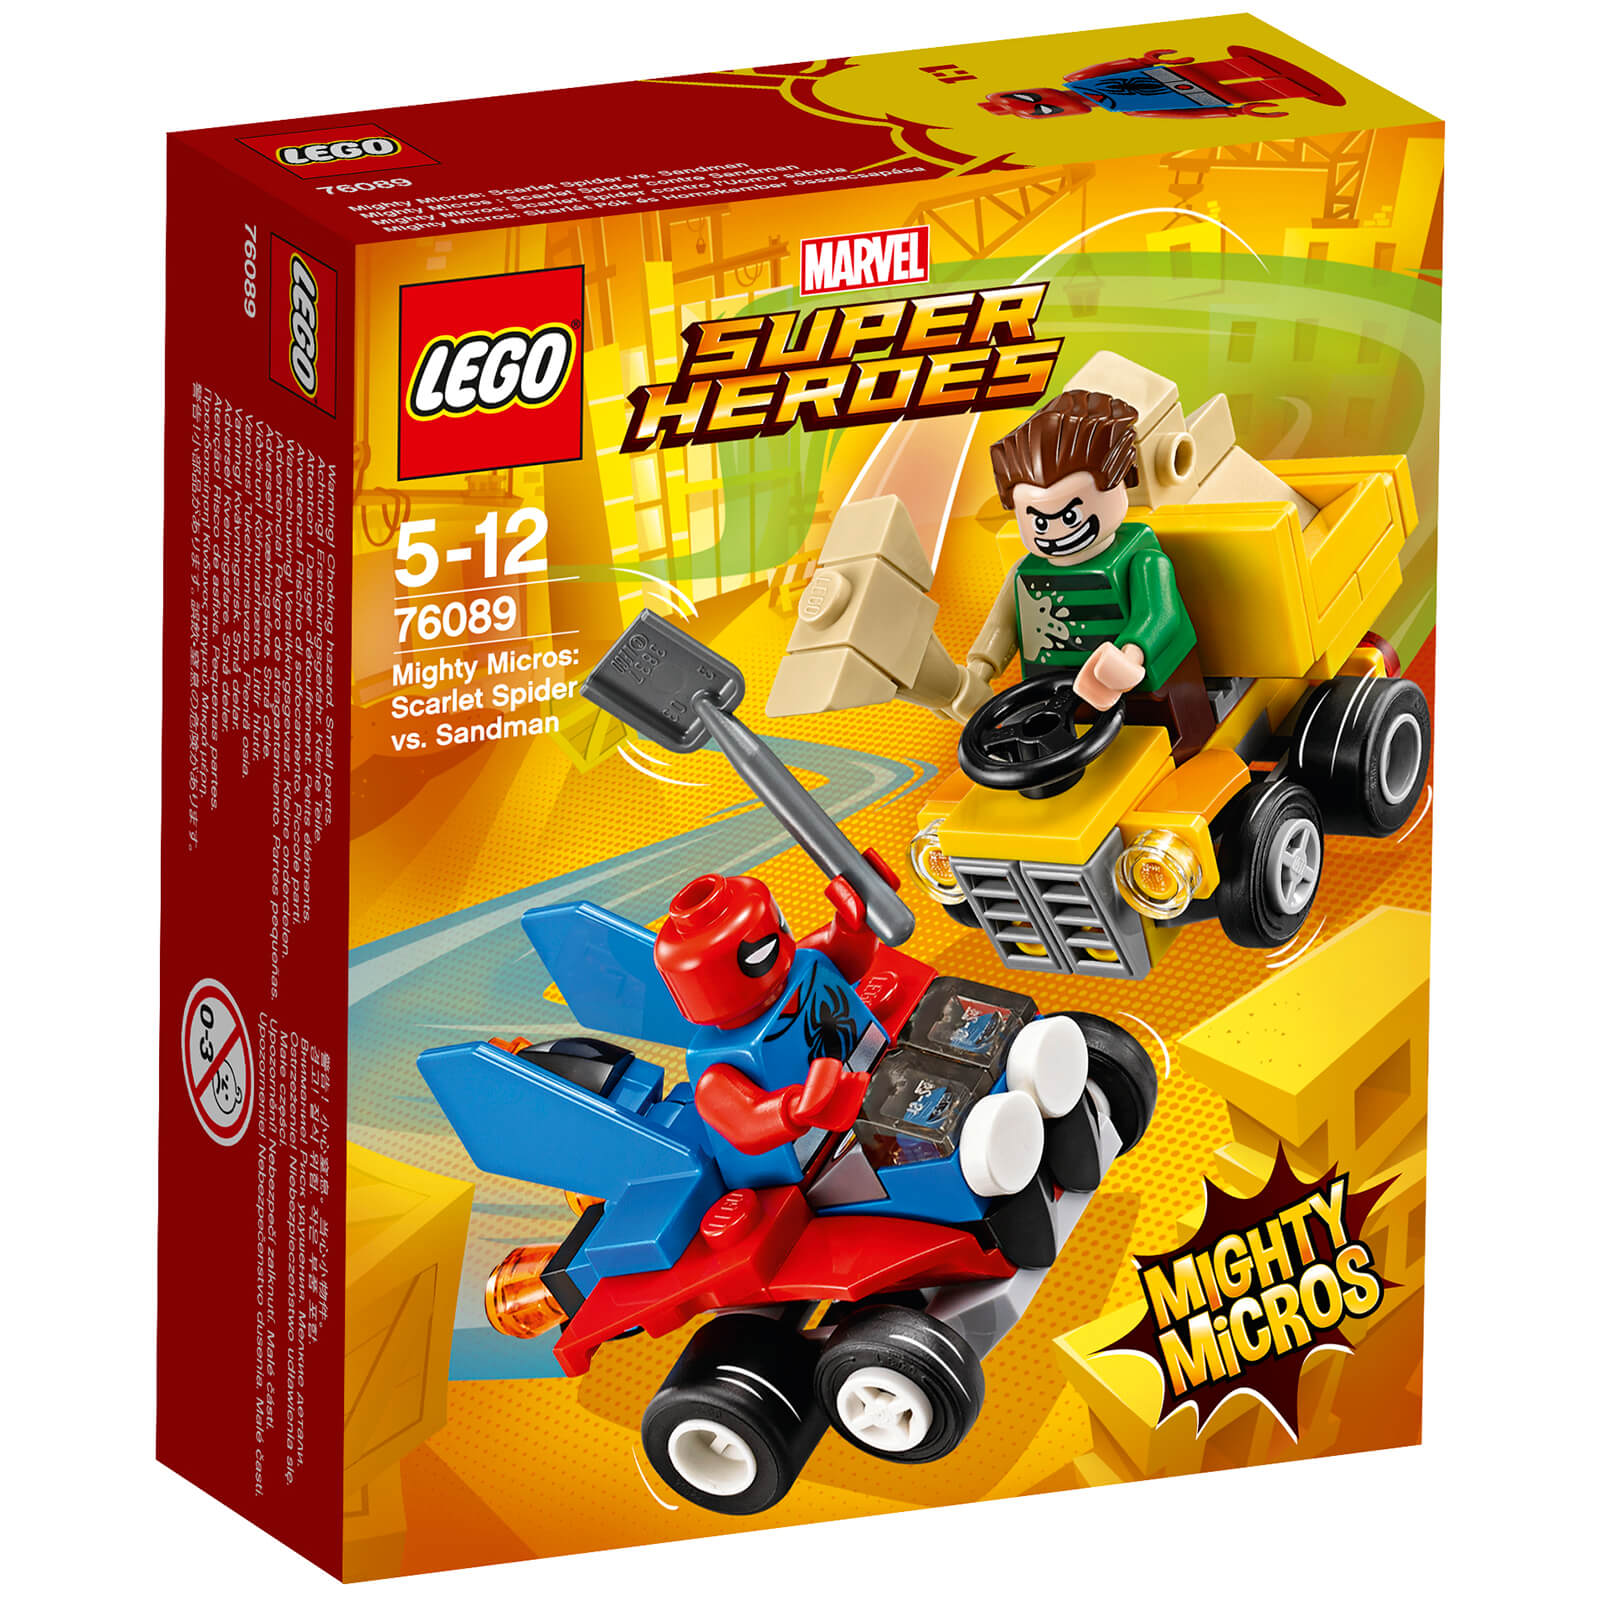 LEGO Superheroes Mighty Micros: Spider-Man Vs. Sandman (76089)